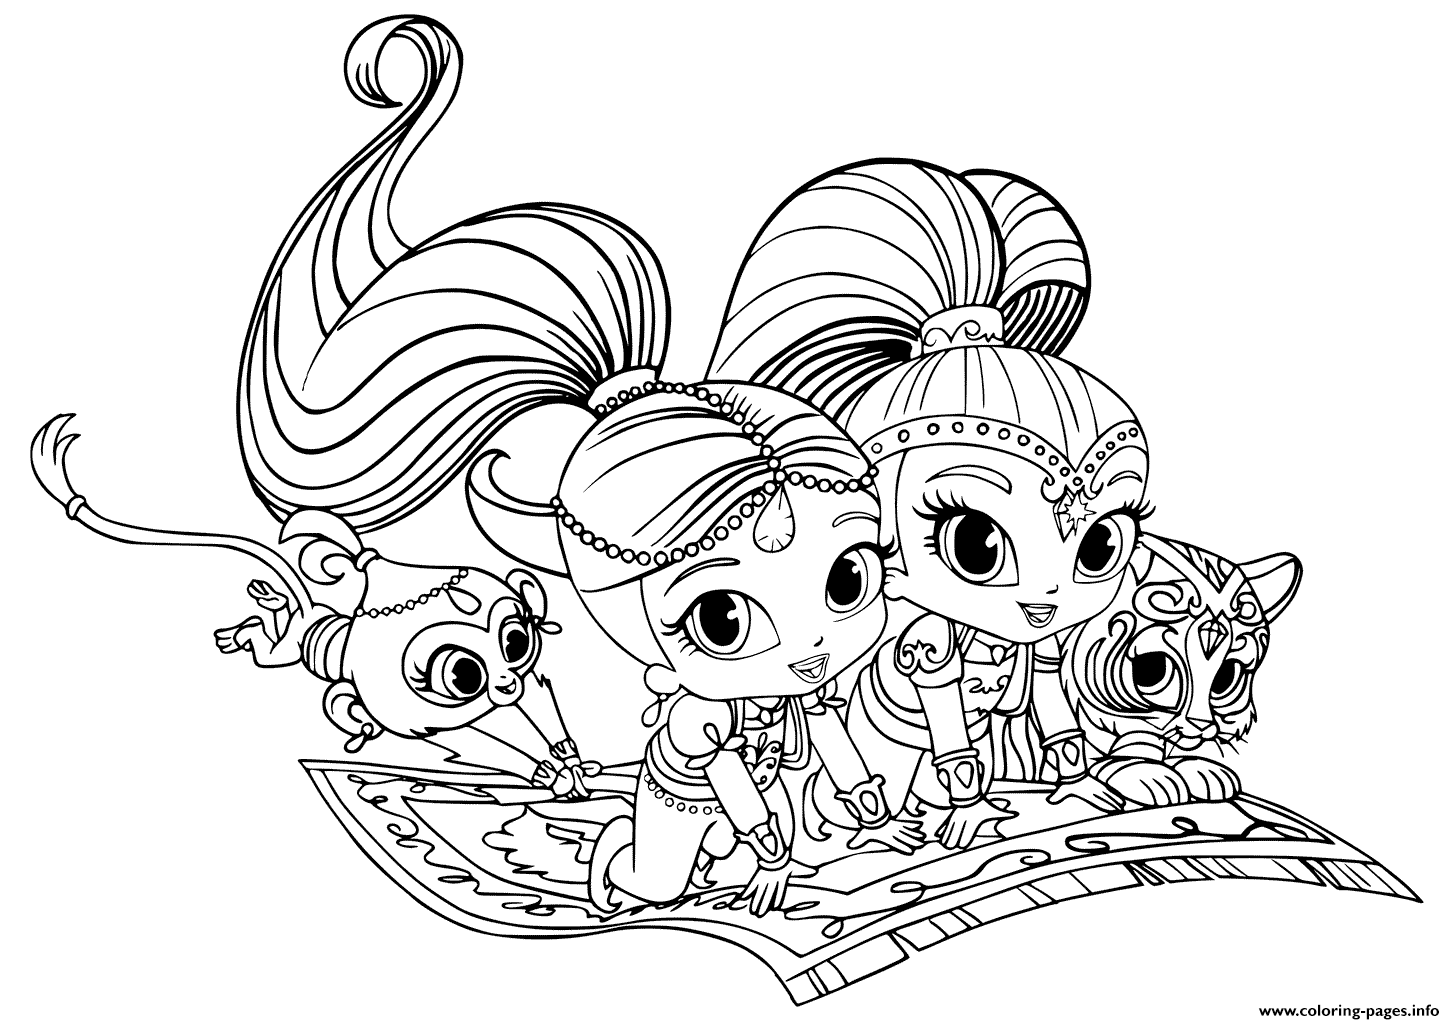 shimmer and shine printable coloring pages Shimmer And Shine Pets Coloring Pages Printable shimmer and shine printable coloring pages